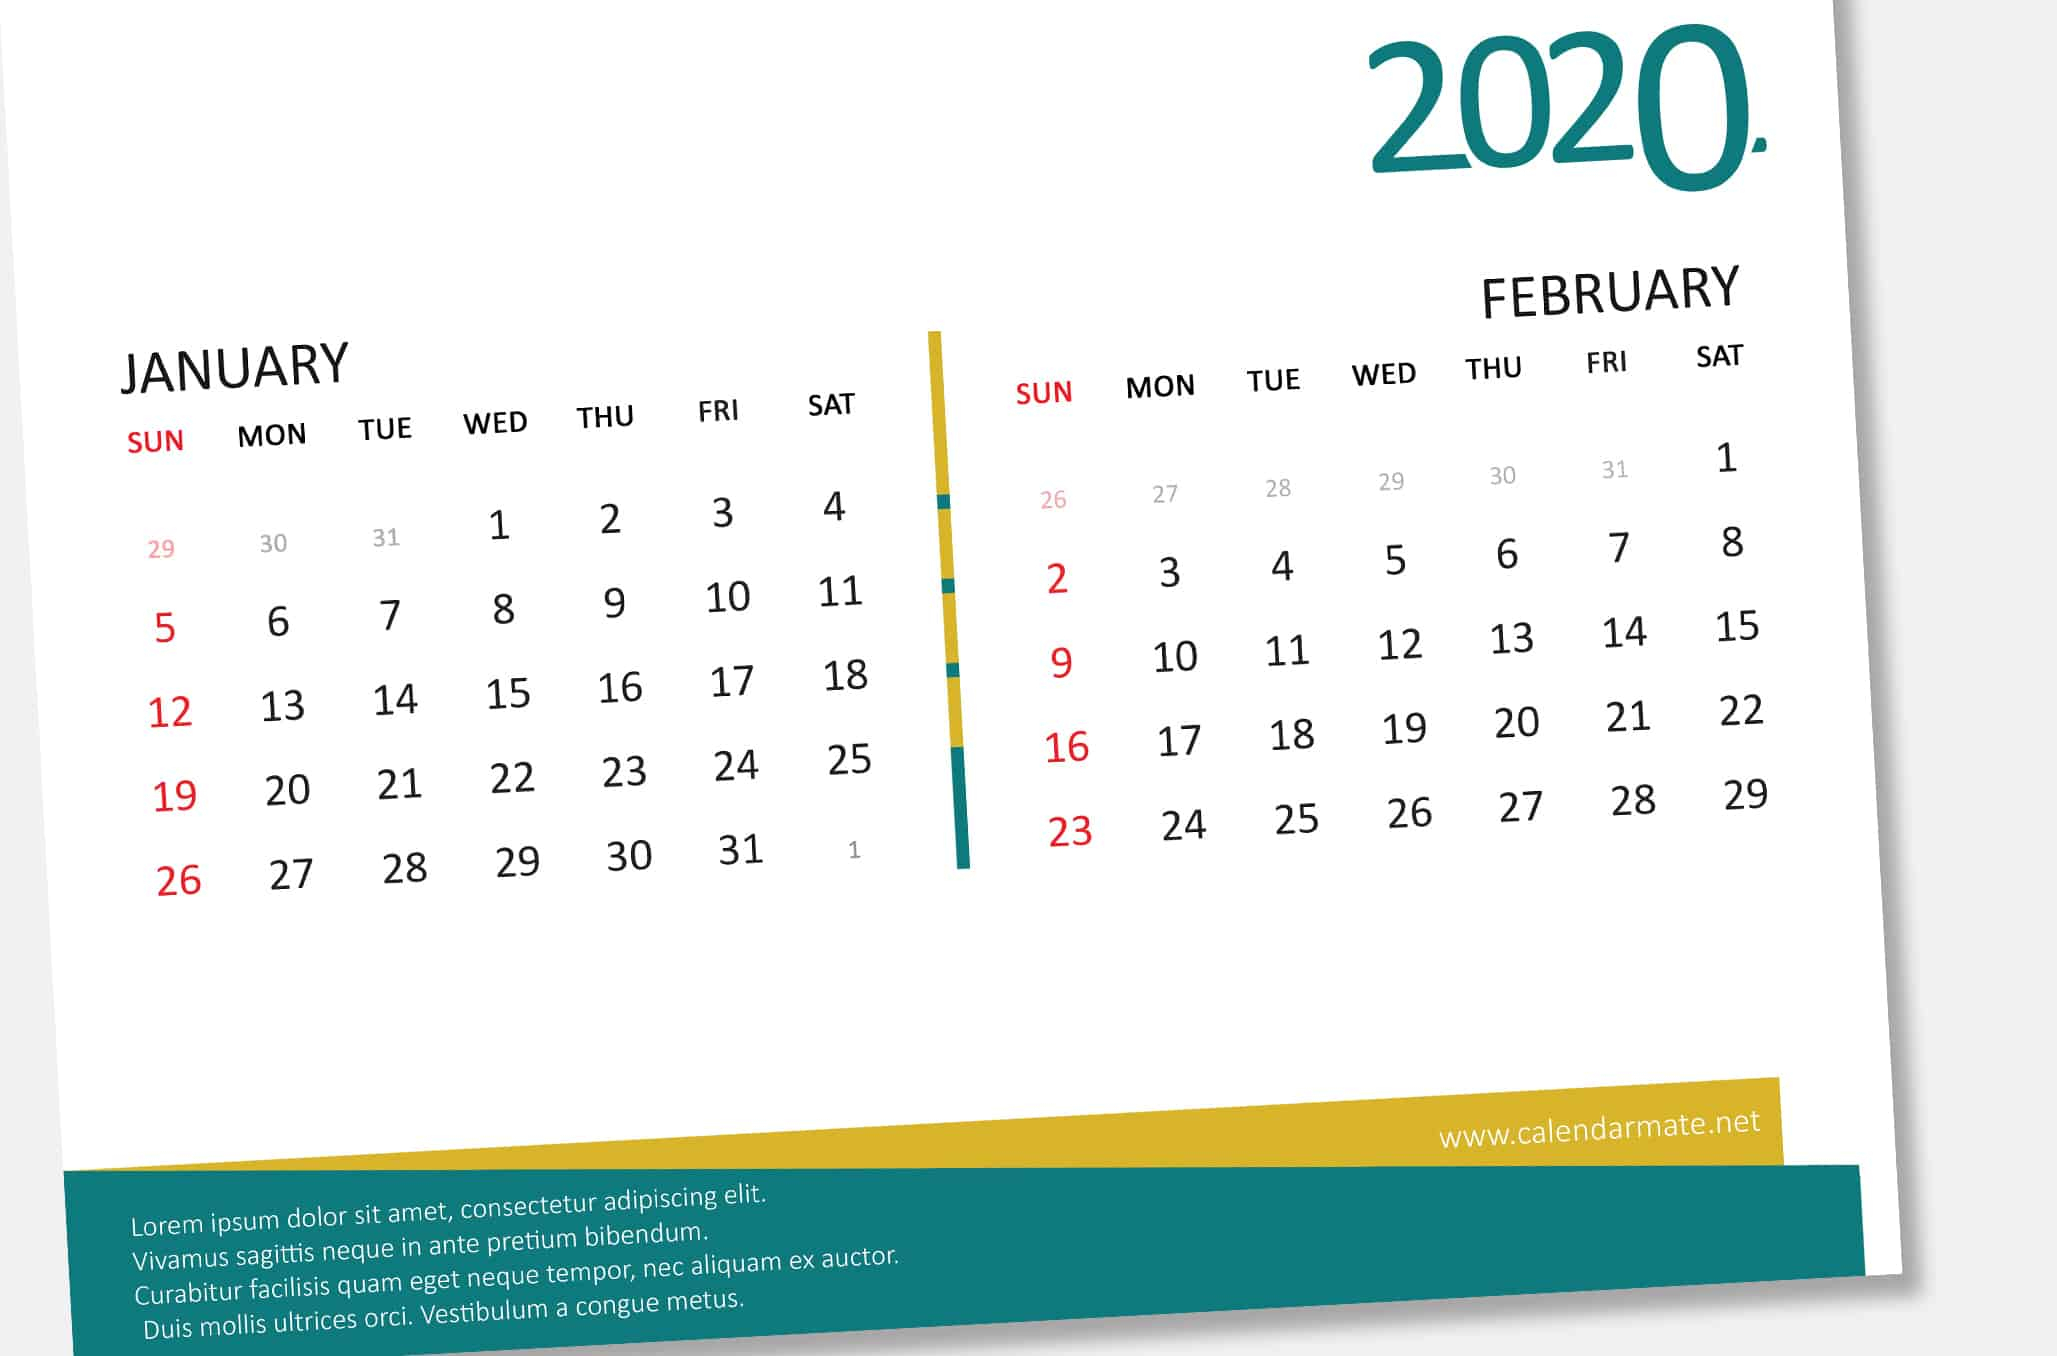 Календарь 2020 Psd  Bagno.site with 2020 Calendar Psd File